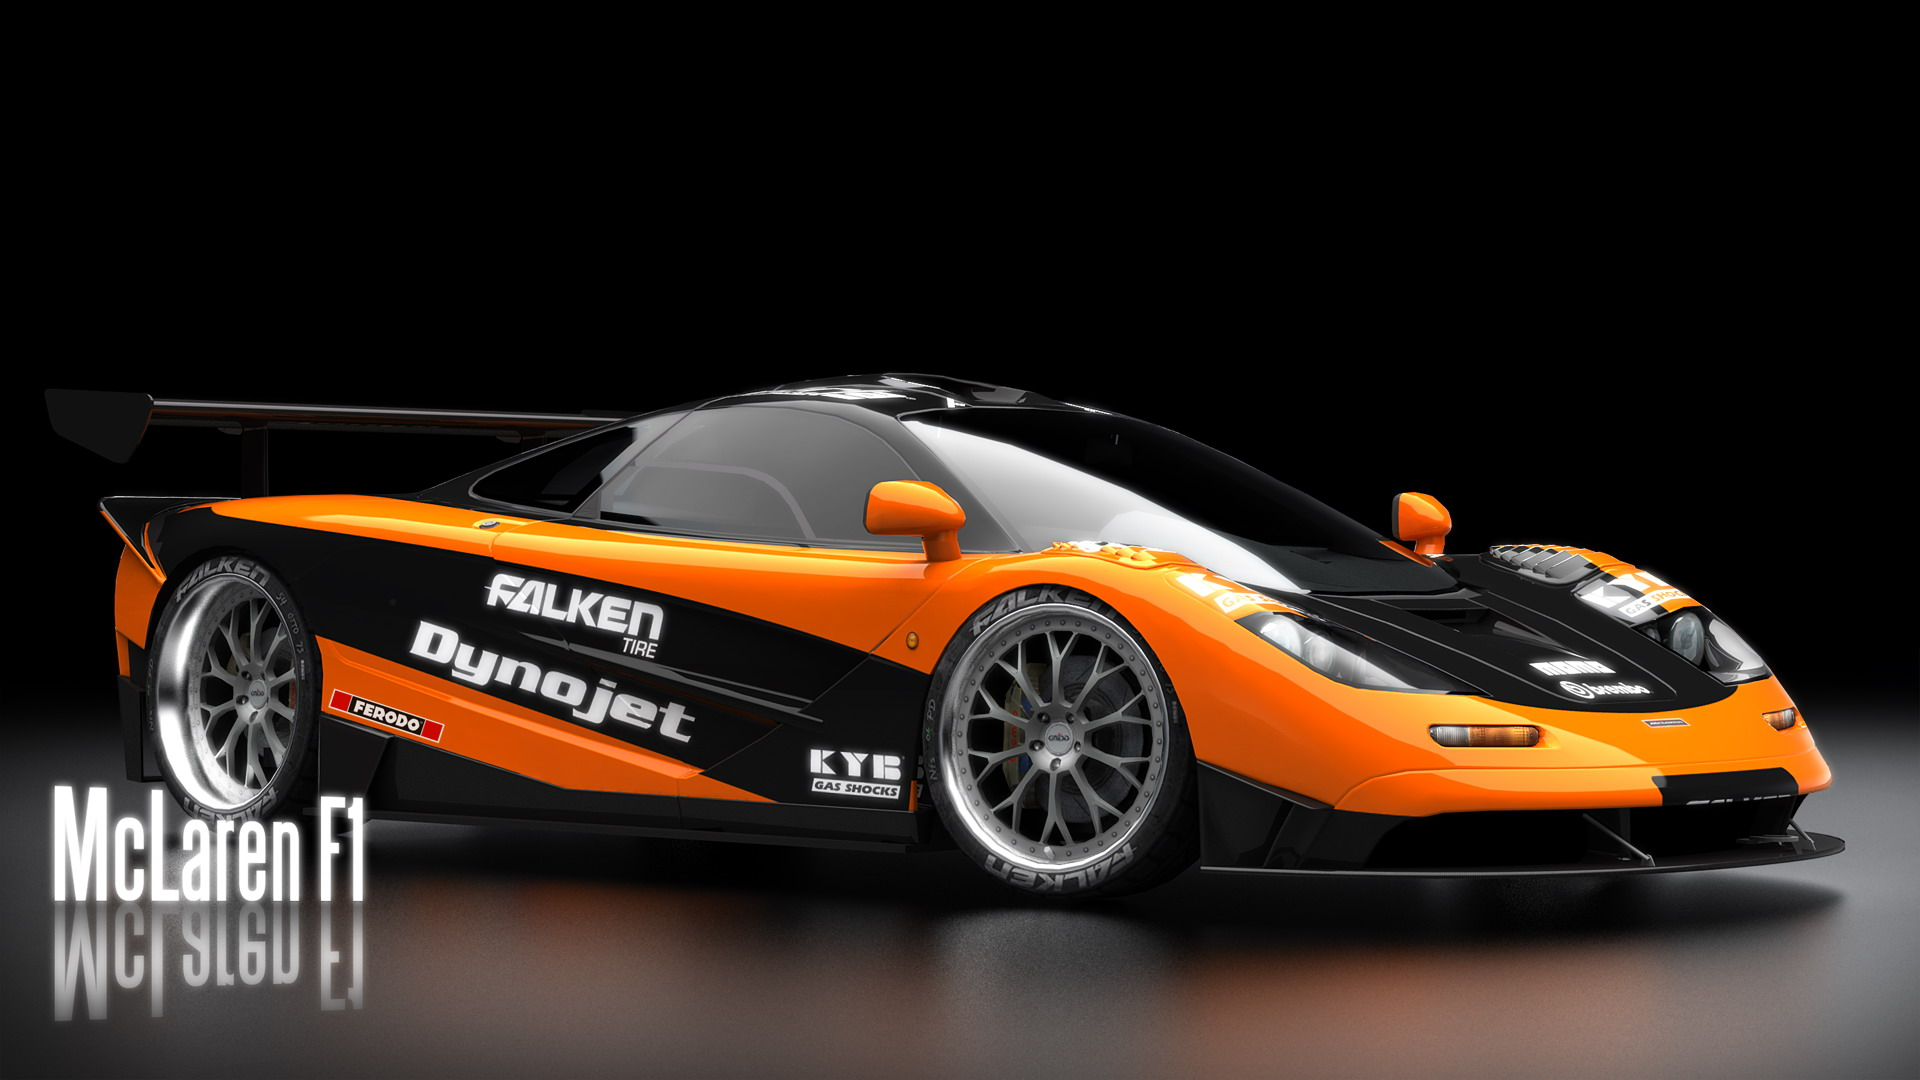 HD Wallpapers Mclaren f1 Need for speed Shift